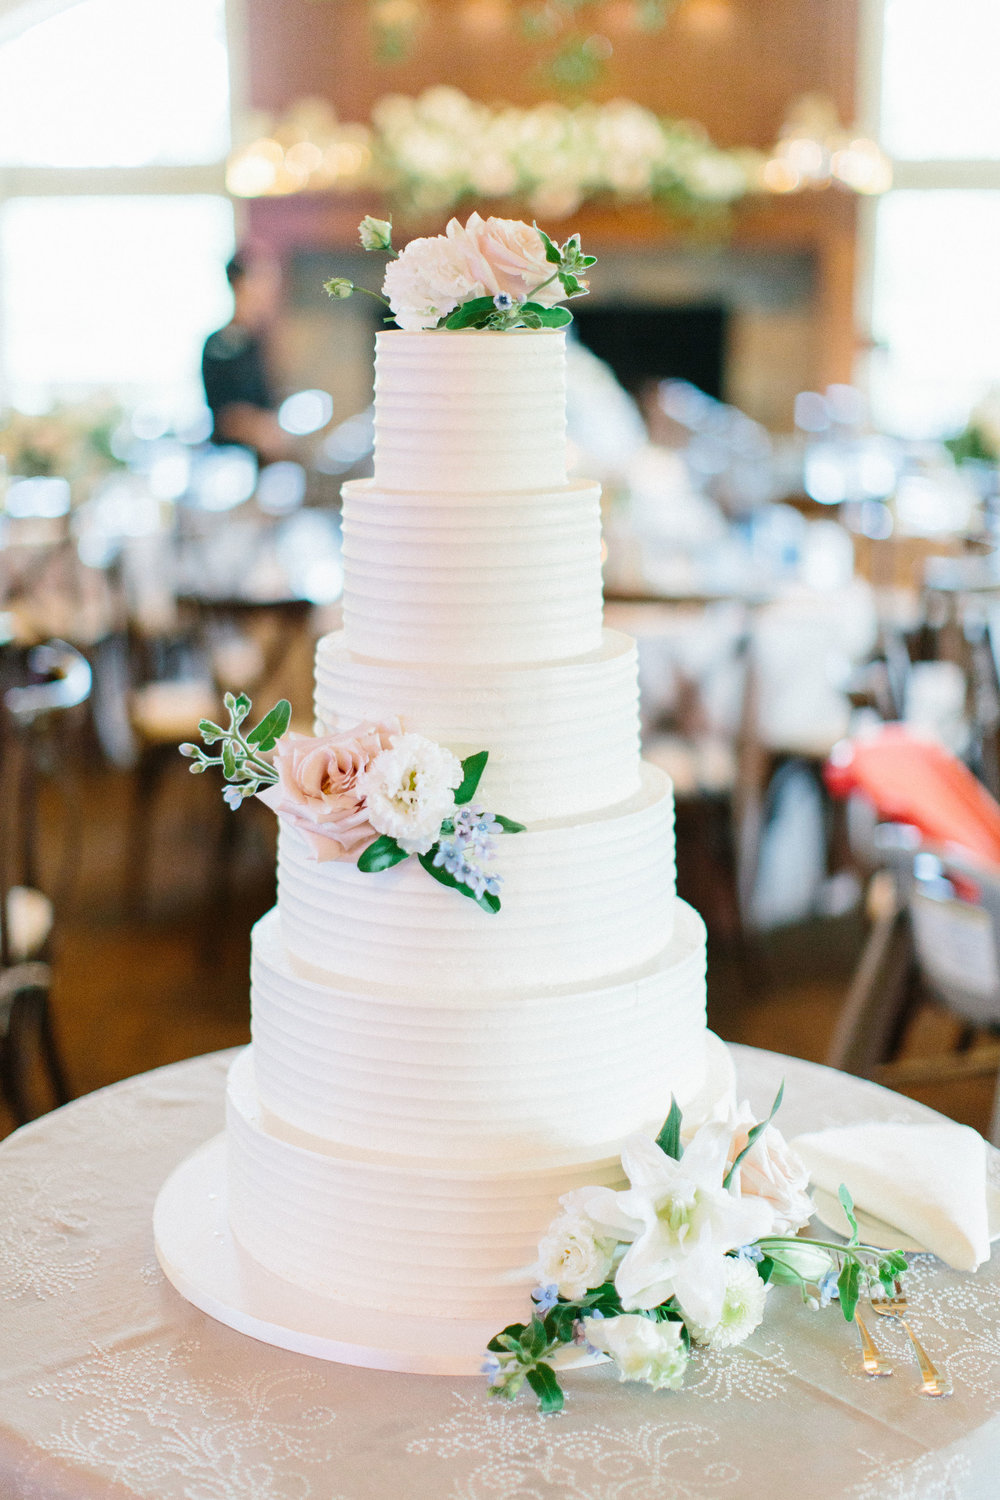 Photo Credit: Kristina Lorraine Photography//Cake: Julie Michelle Cakes